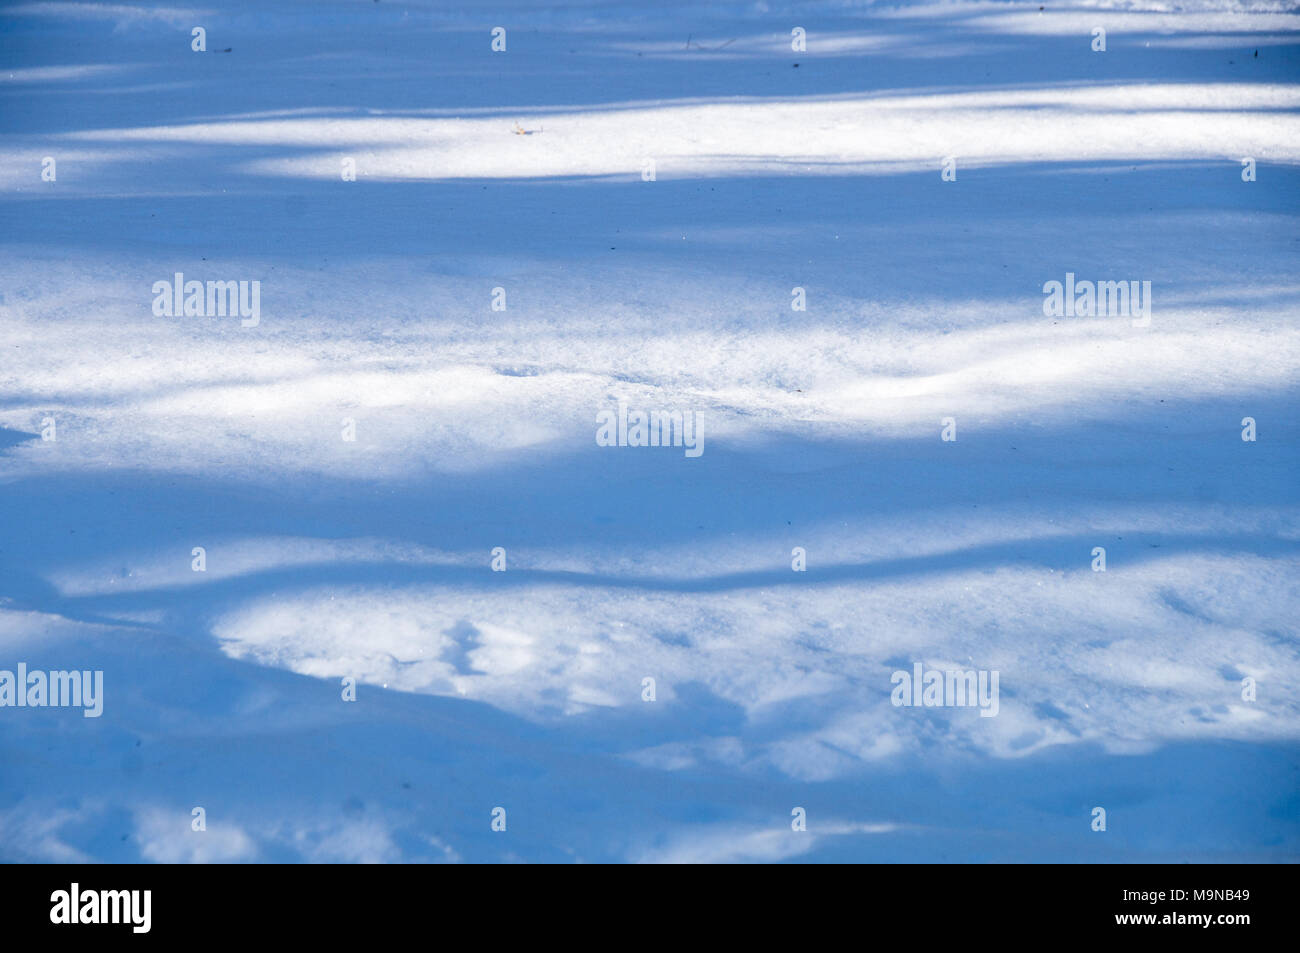 Snow on the ground - Stock Image